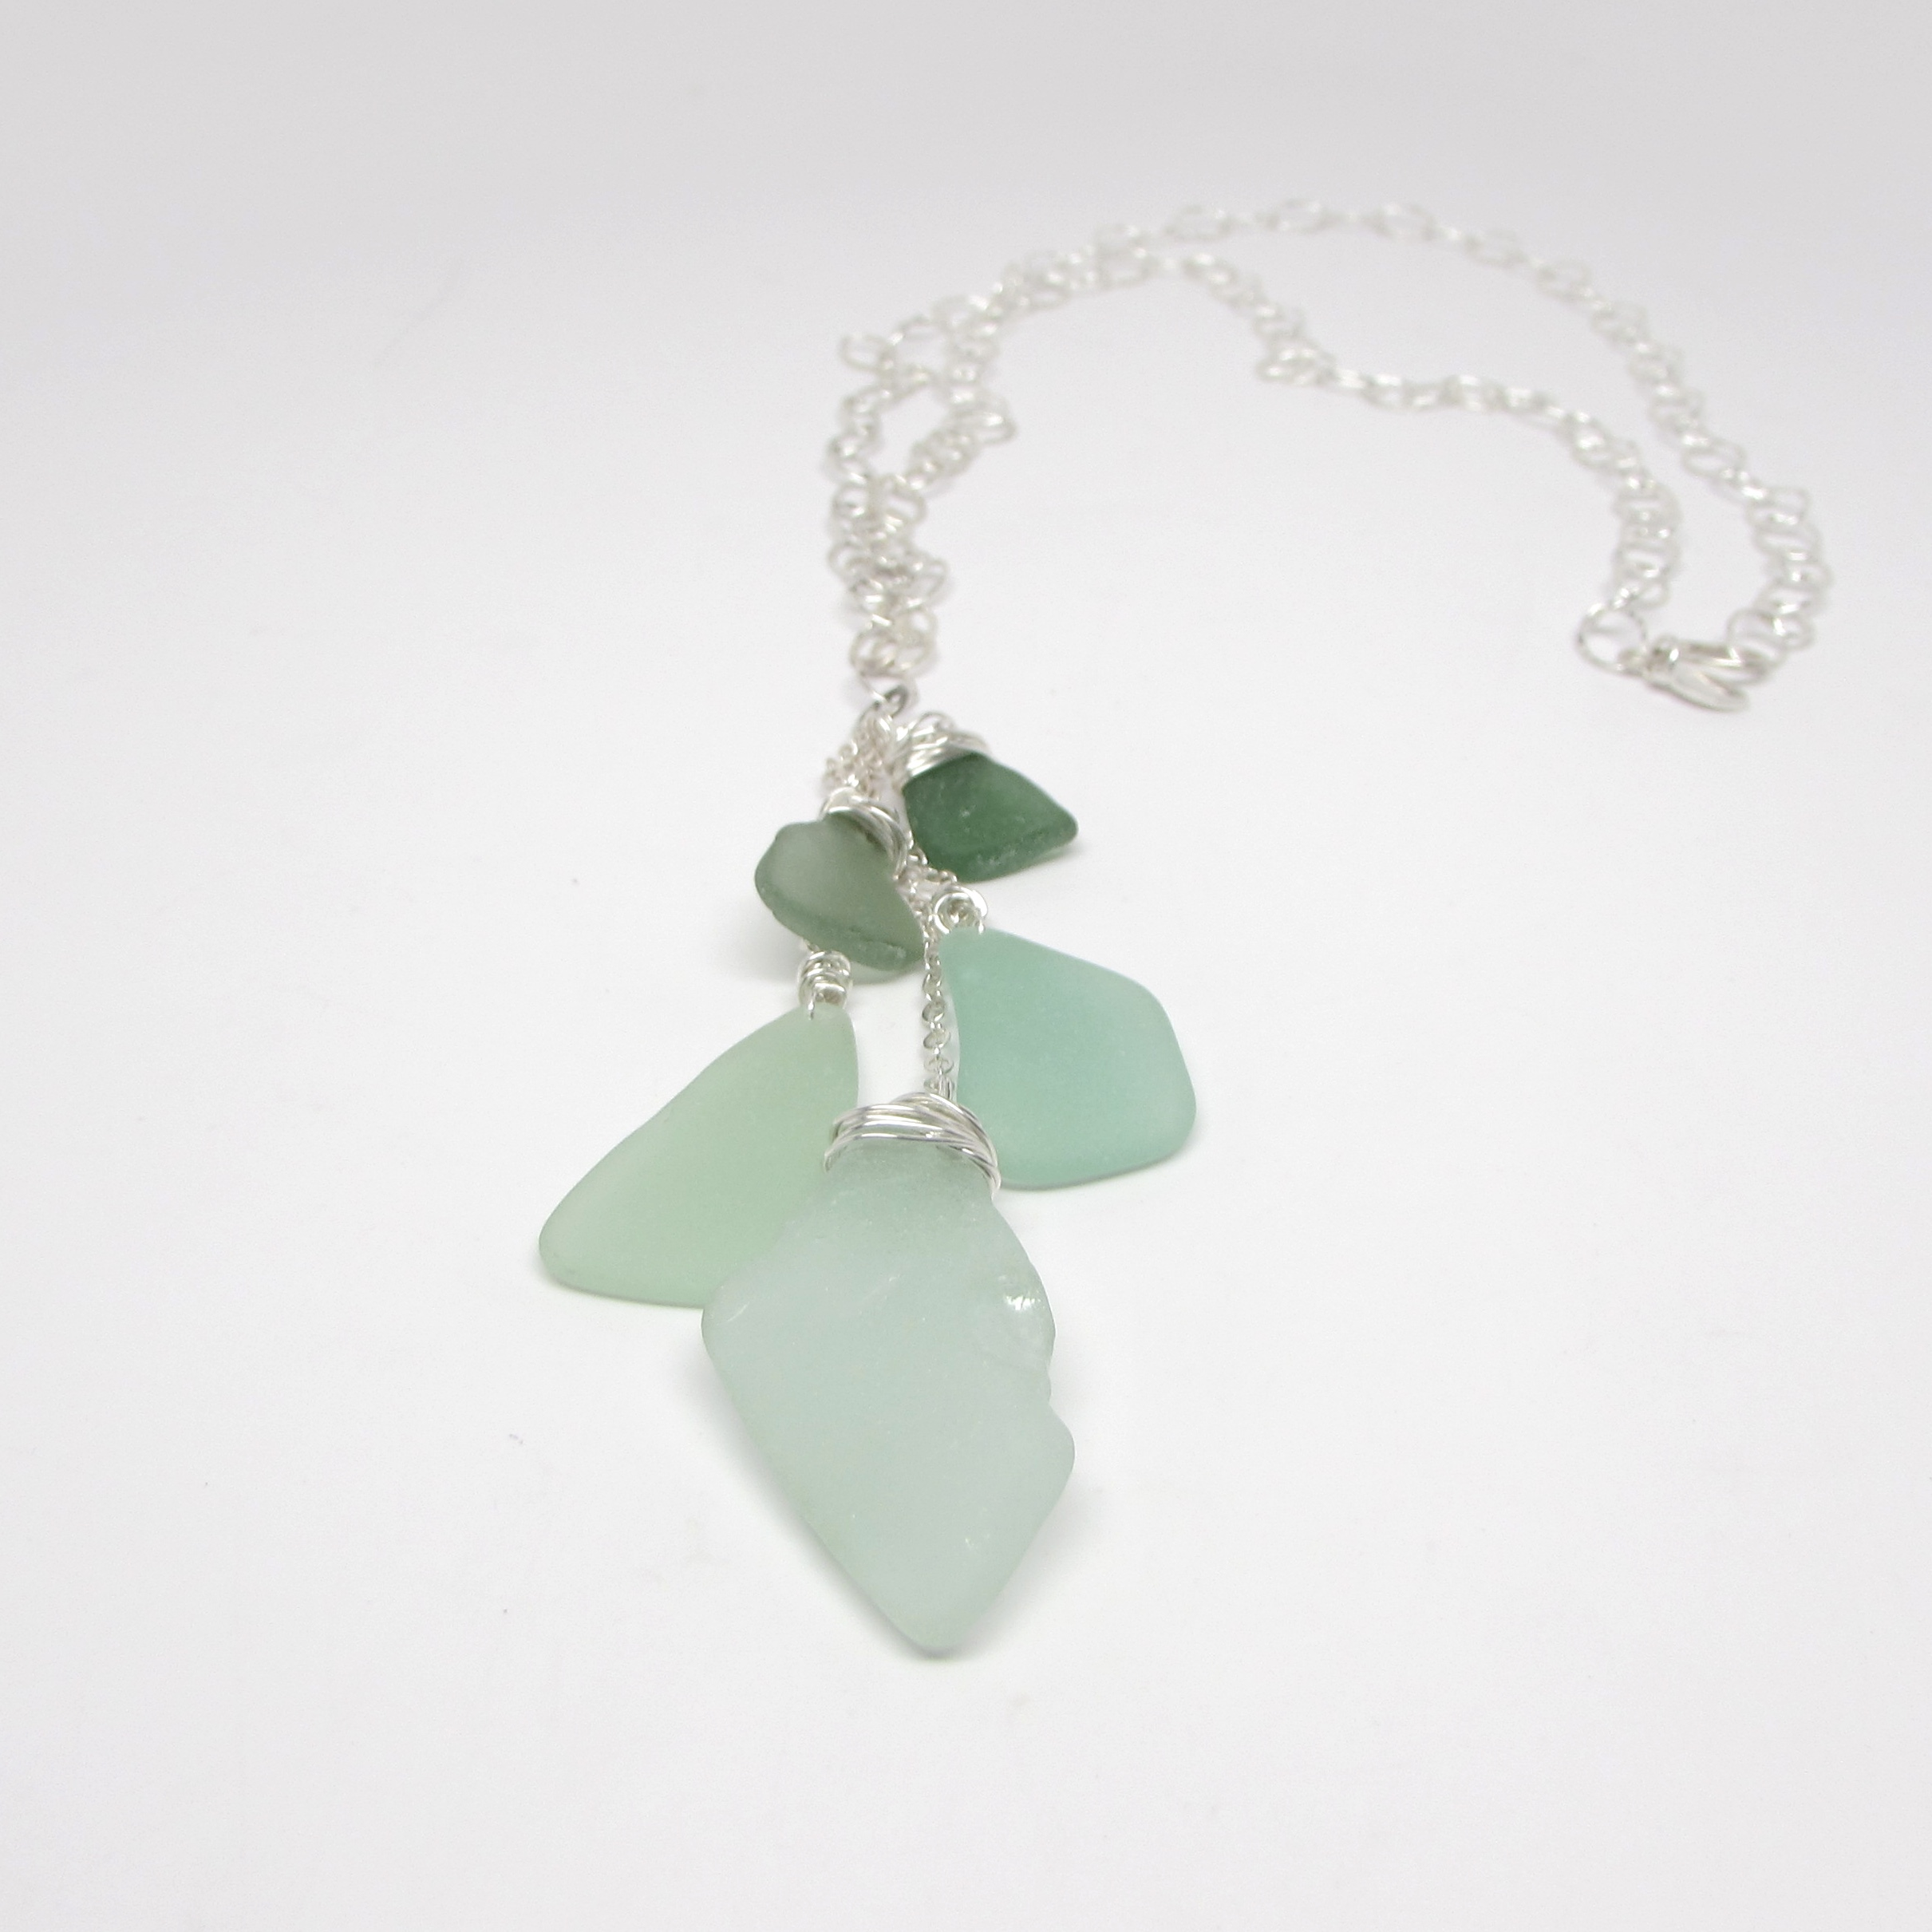 sea-glass-waterfall-necklace-sea-grass